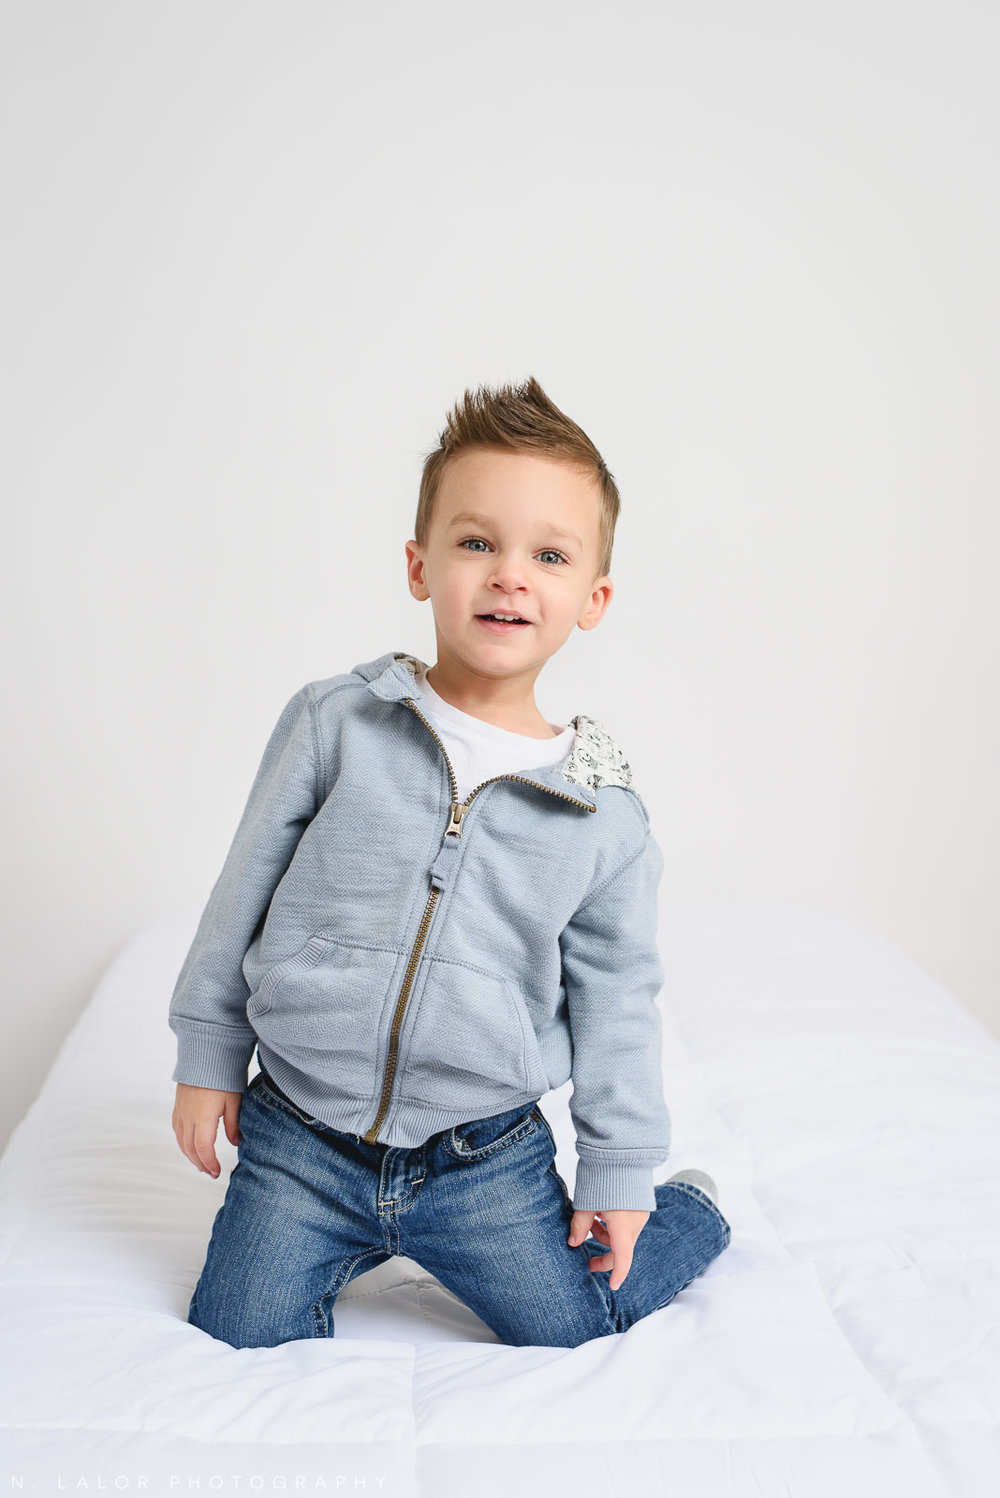 Being a 3-year old boy. Studio portrait by N. Lalor Photography in Greenwich, Connecticut.